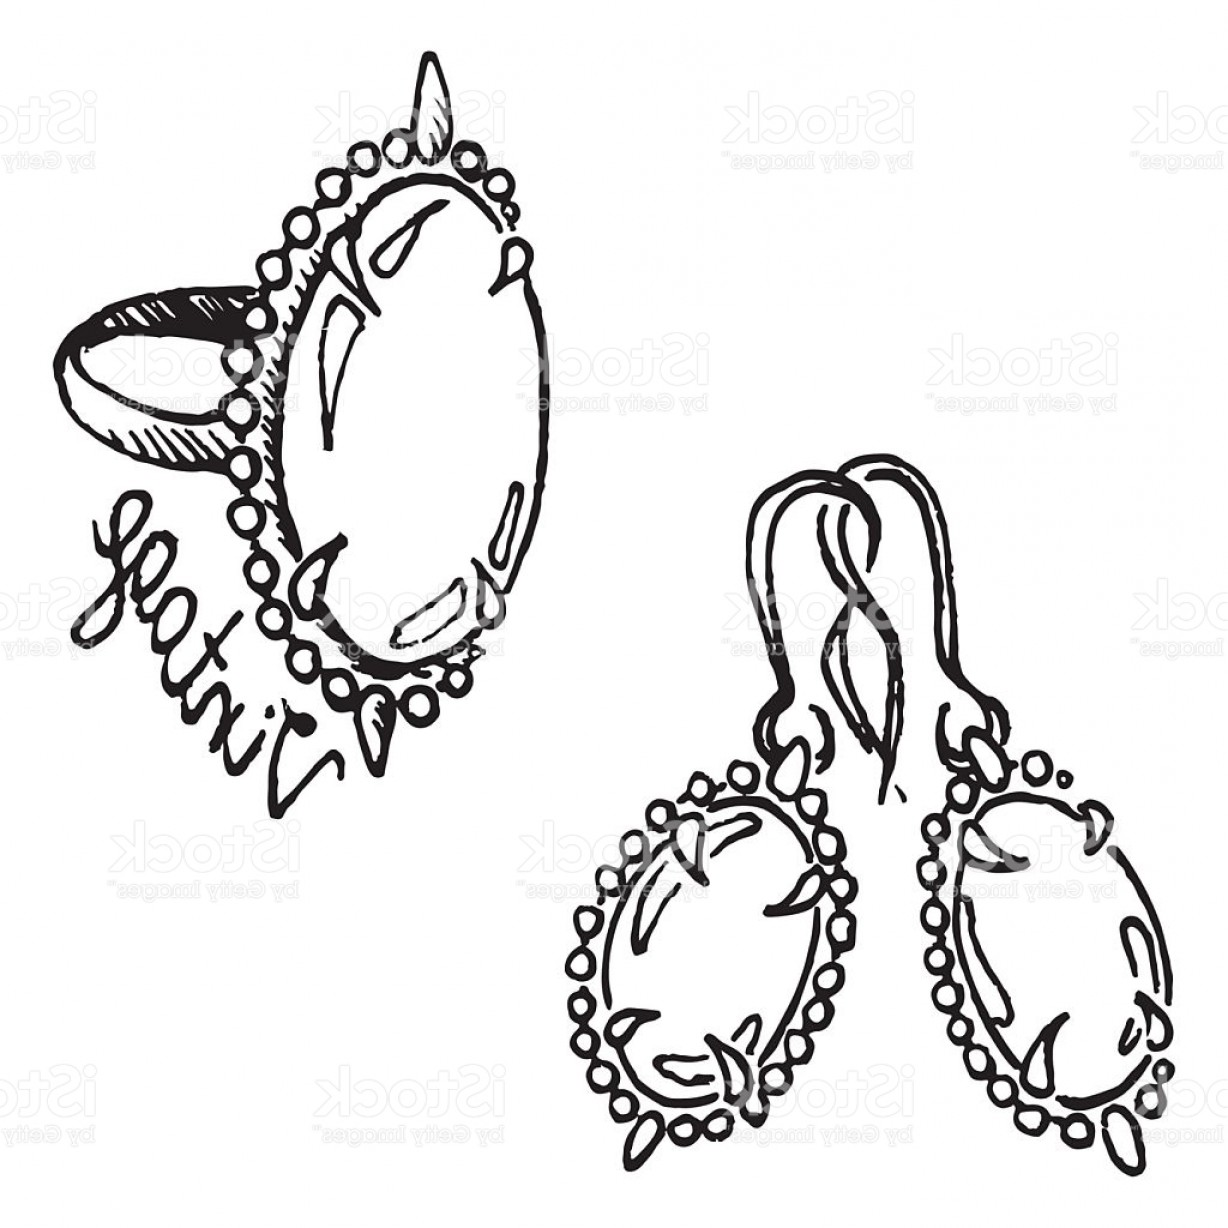 Jewelry Vector Line Art: Doodle Ring Earrings Jewelry Set Sketch Vintage Isolated Vector Gm